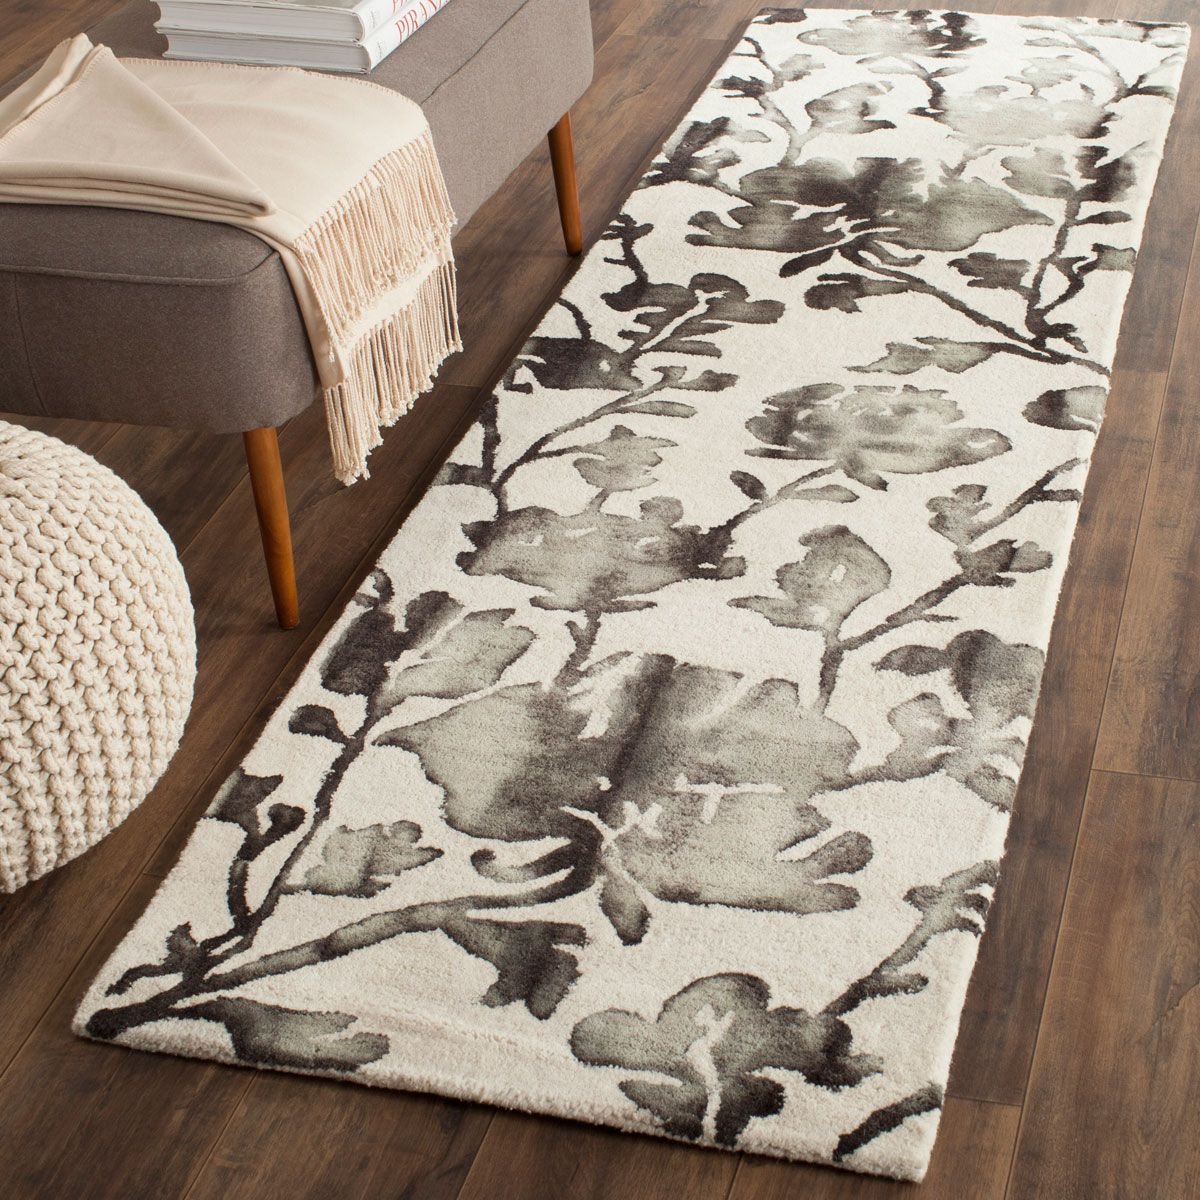 Dip Dye Collection DDY716D Color: Ivory / Charcoal - #safavieh #safaviehrugs #safaviehrunners #rugrunners #rugs #hallwayrugs #entrywayrugs #staircaserugs #staircasecarpets #entrywaycarpts #bedroomrugs #livingroomrugs #diningroomrugs #kitchenrugs #hallwaydecor #entrywaydecor #shoprugs #runnercarpets #bluerunnerrug #tauperunnerrug